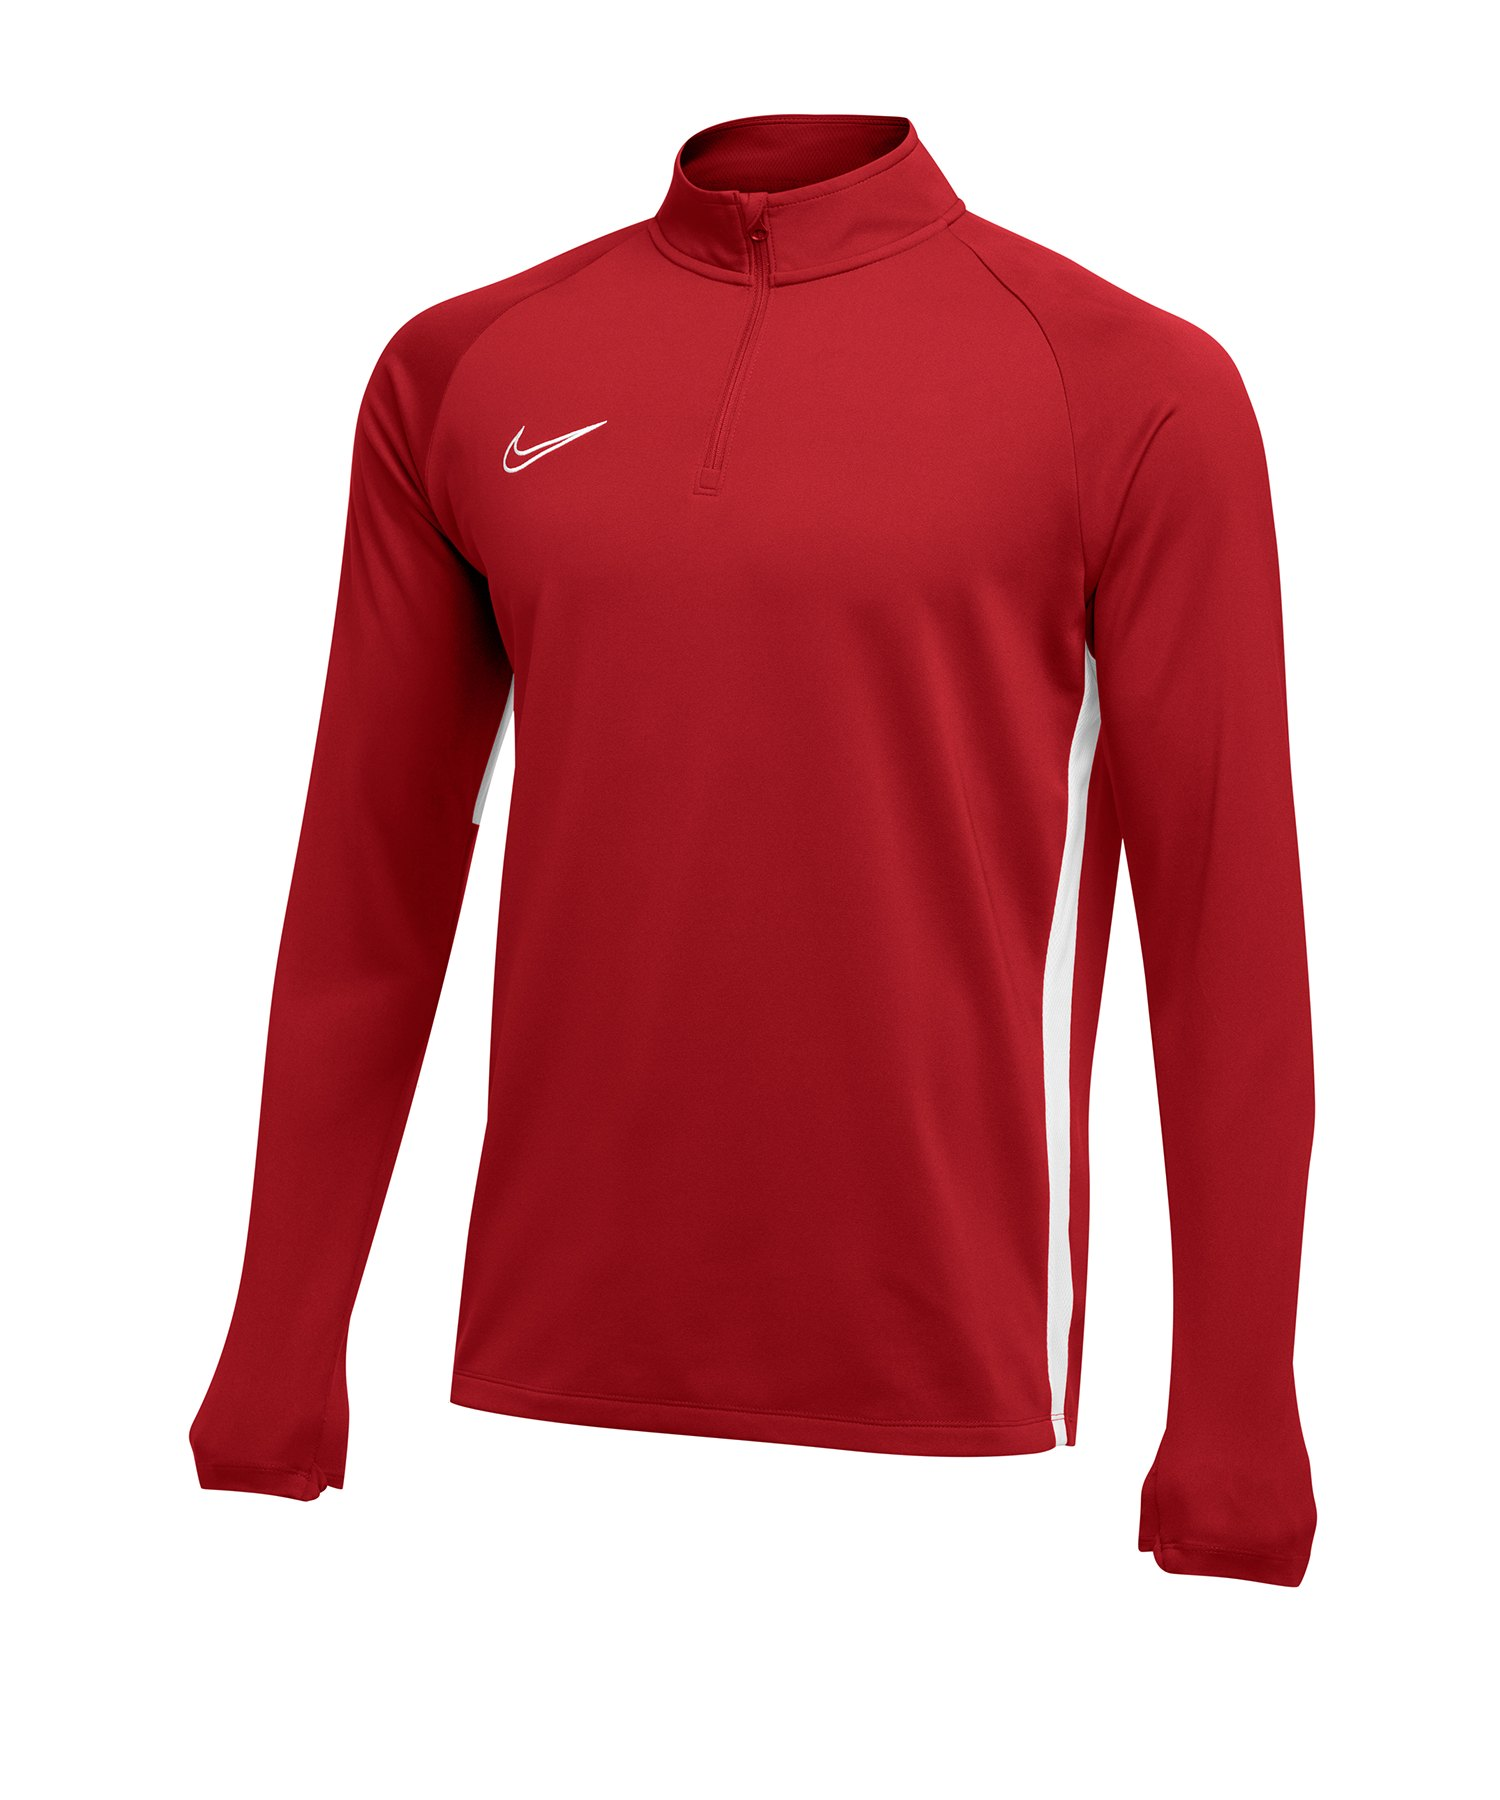 Nike Academy 19 1/4 Zip Drill Top Rot F657 - rot